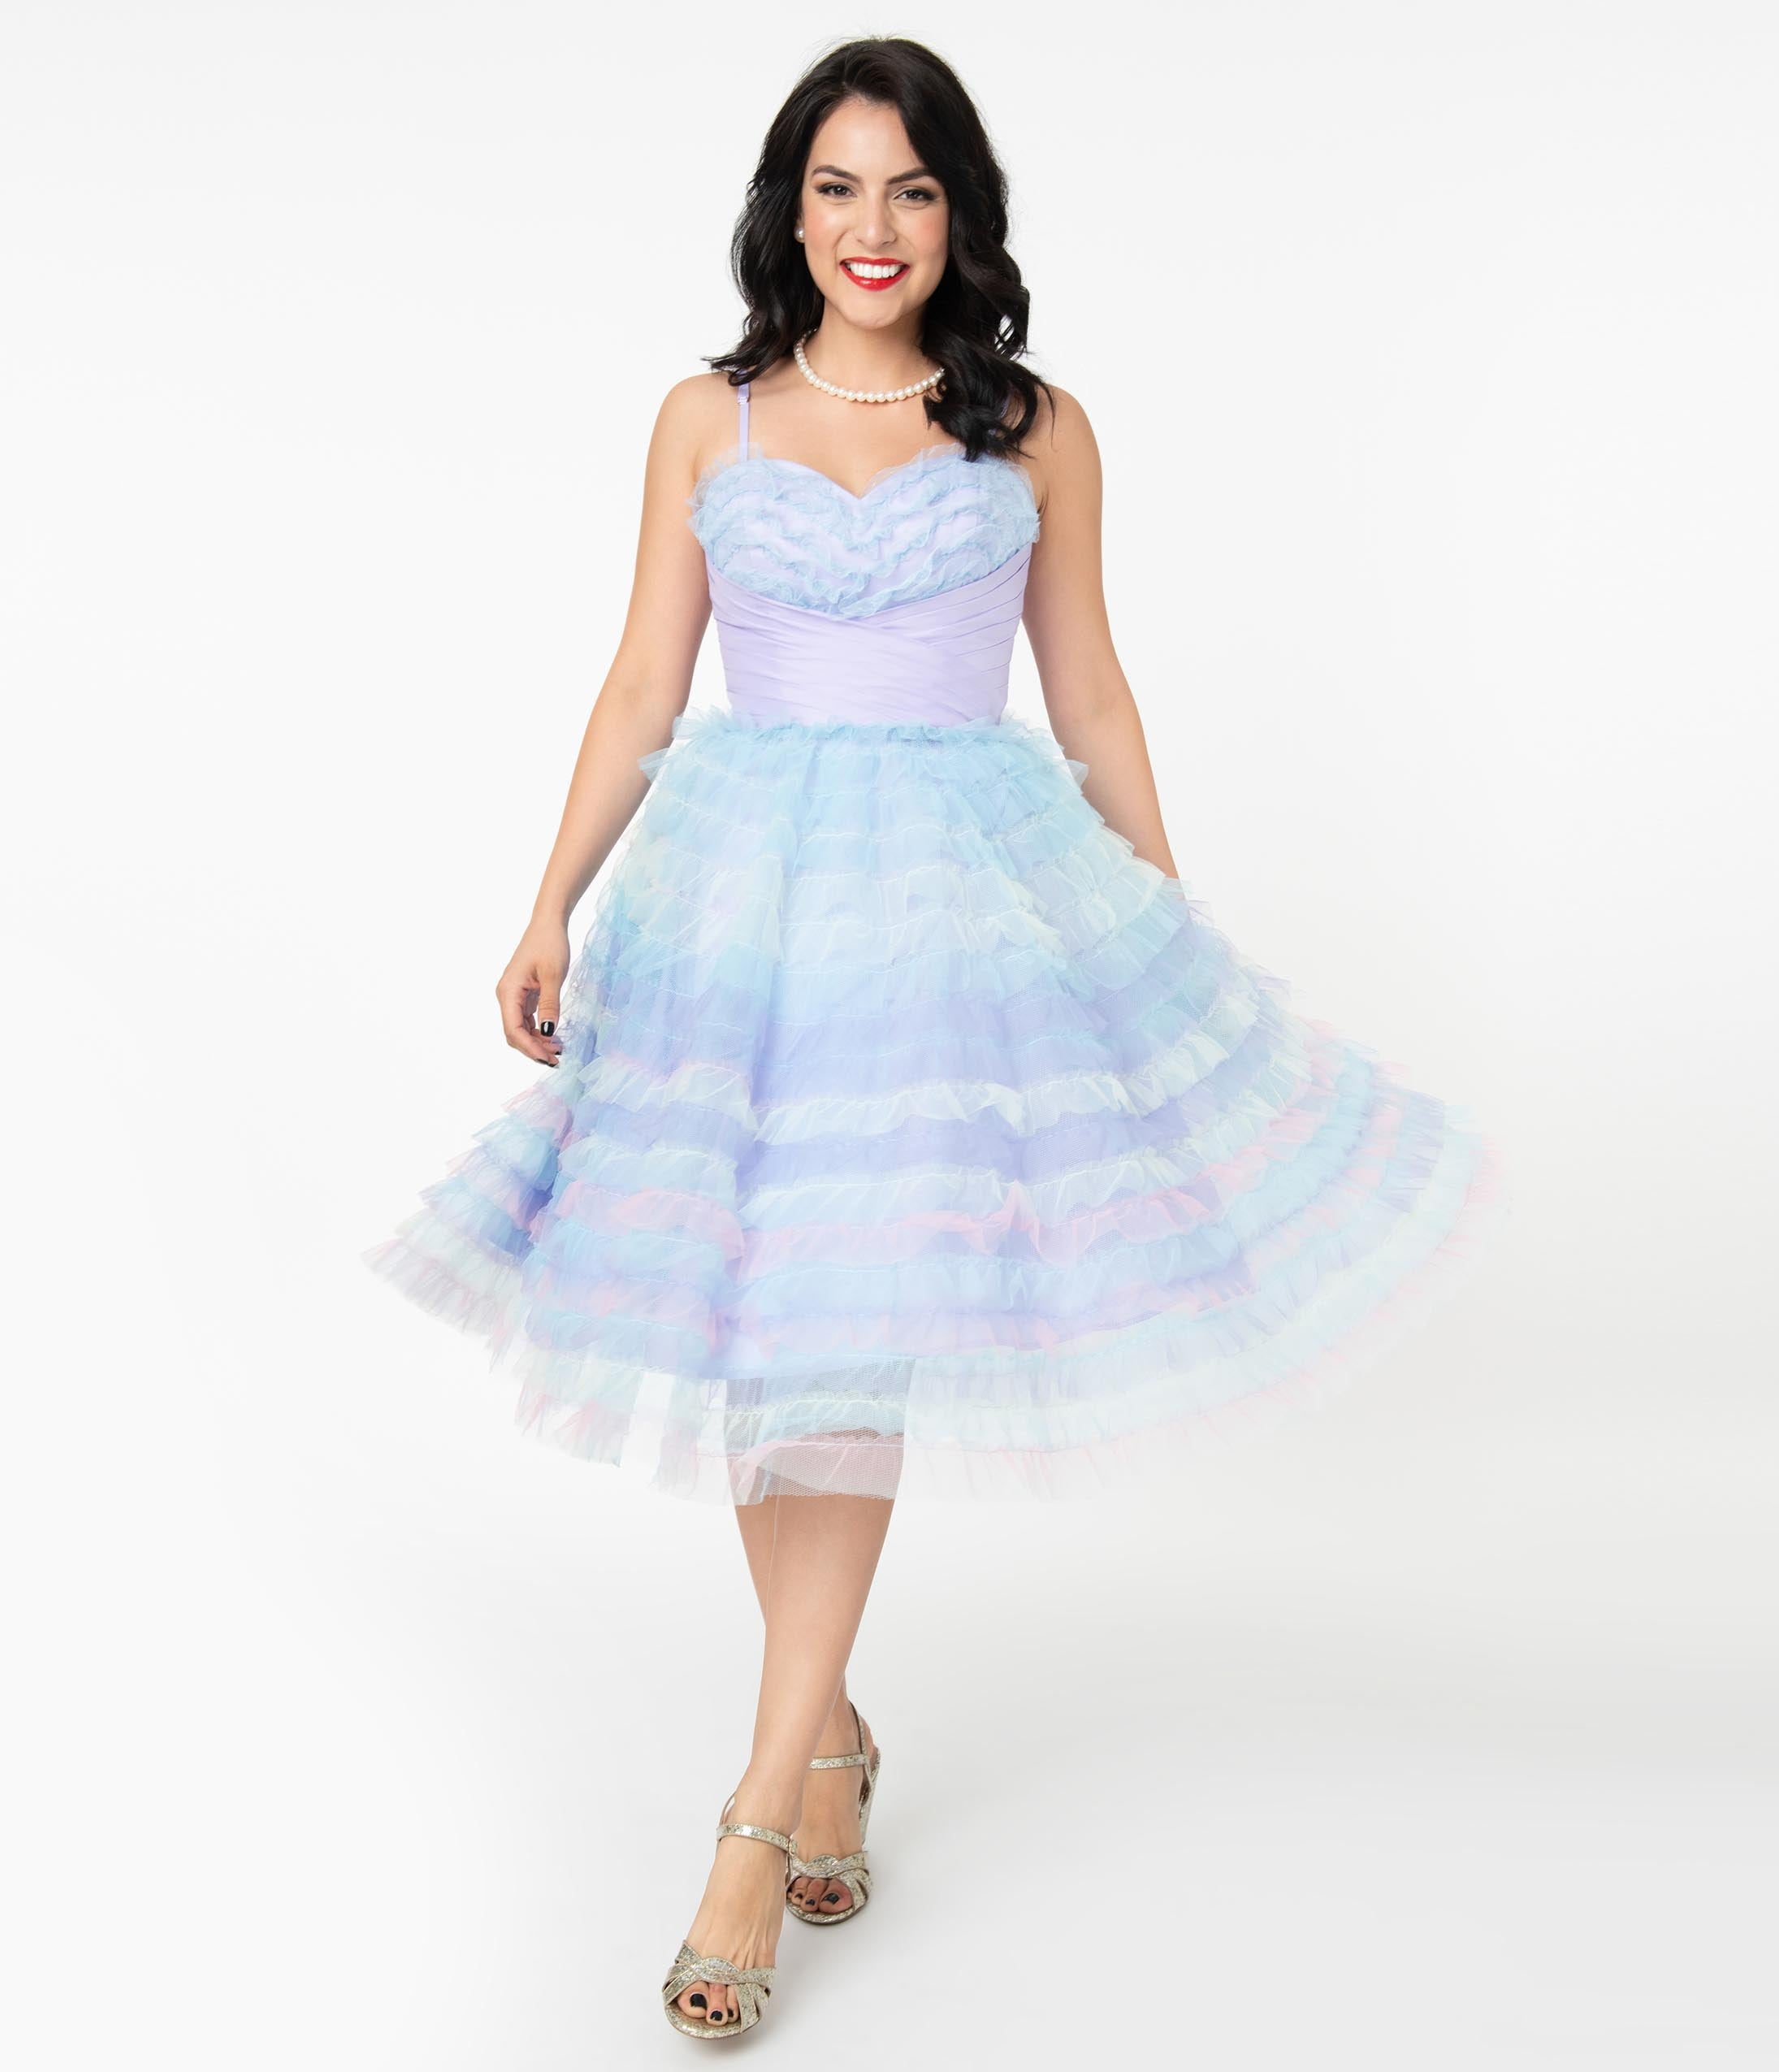 1950s History of Prom, Party, Evening and Formal Dresses Unique Vintage Pastel Ombre Tulle Cupcake Swing Dress $148.00 AT vintagedancer.com